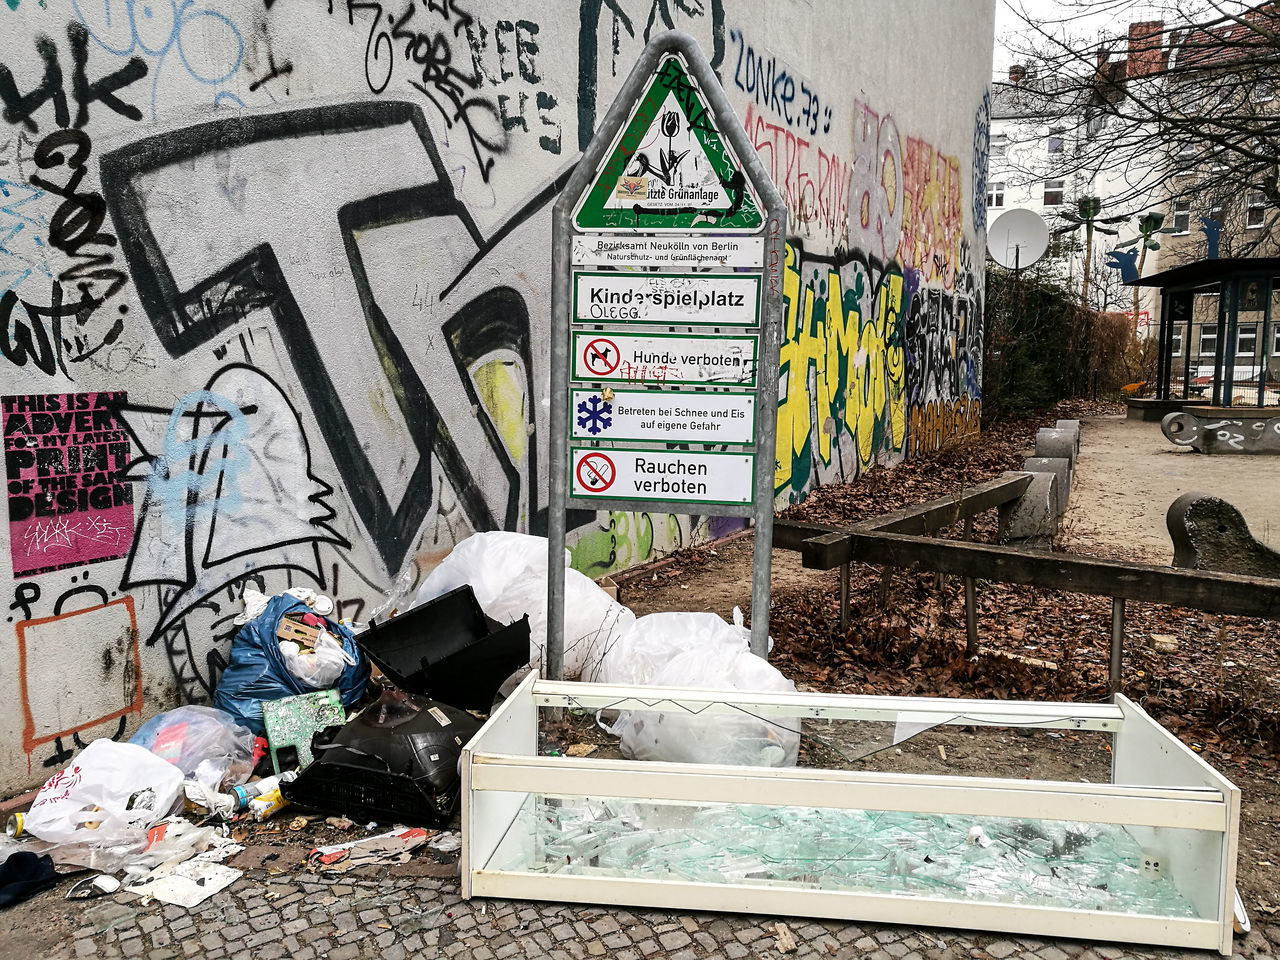 Berlin Berlin Photography Berliner Ansichten City Day Dreck Garbage Graffiti Müll Neukölln Street Text Waste Wasted